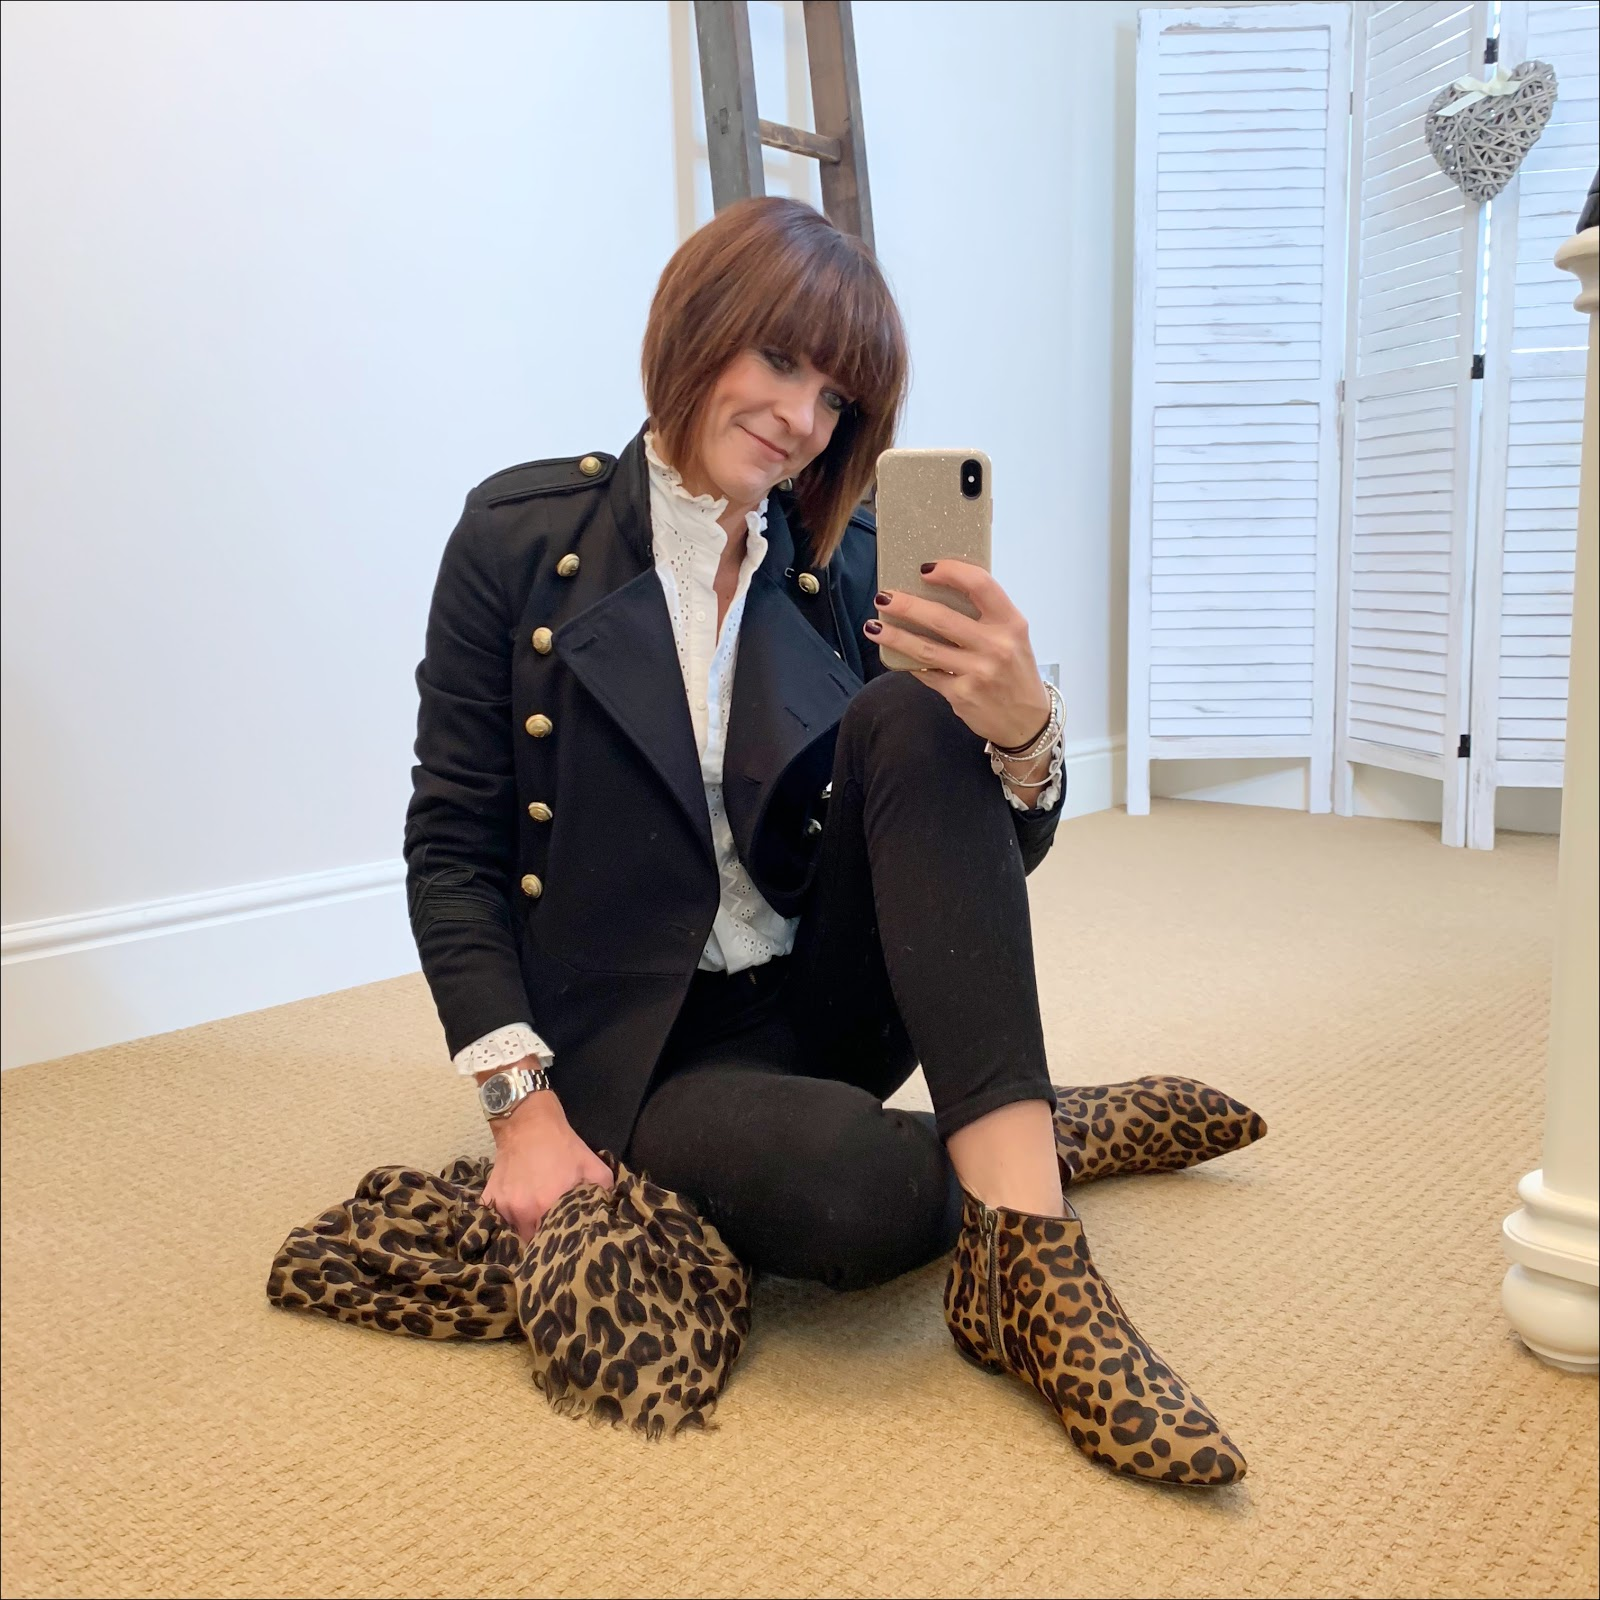 my midlife fashion, zara embroidered blouse, isabel marant etoile military jacket, j crew 8 inch stretchy toothpick jeans, boden leopard print flat ankle boots, louis vuitton leopard print shawl scarf